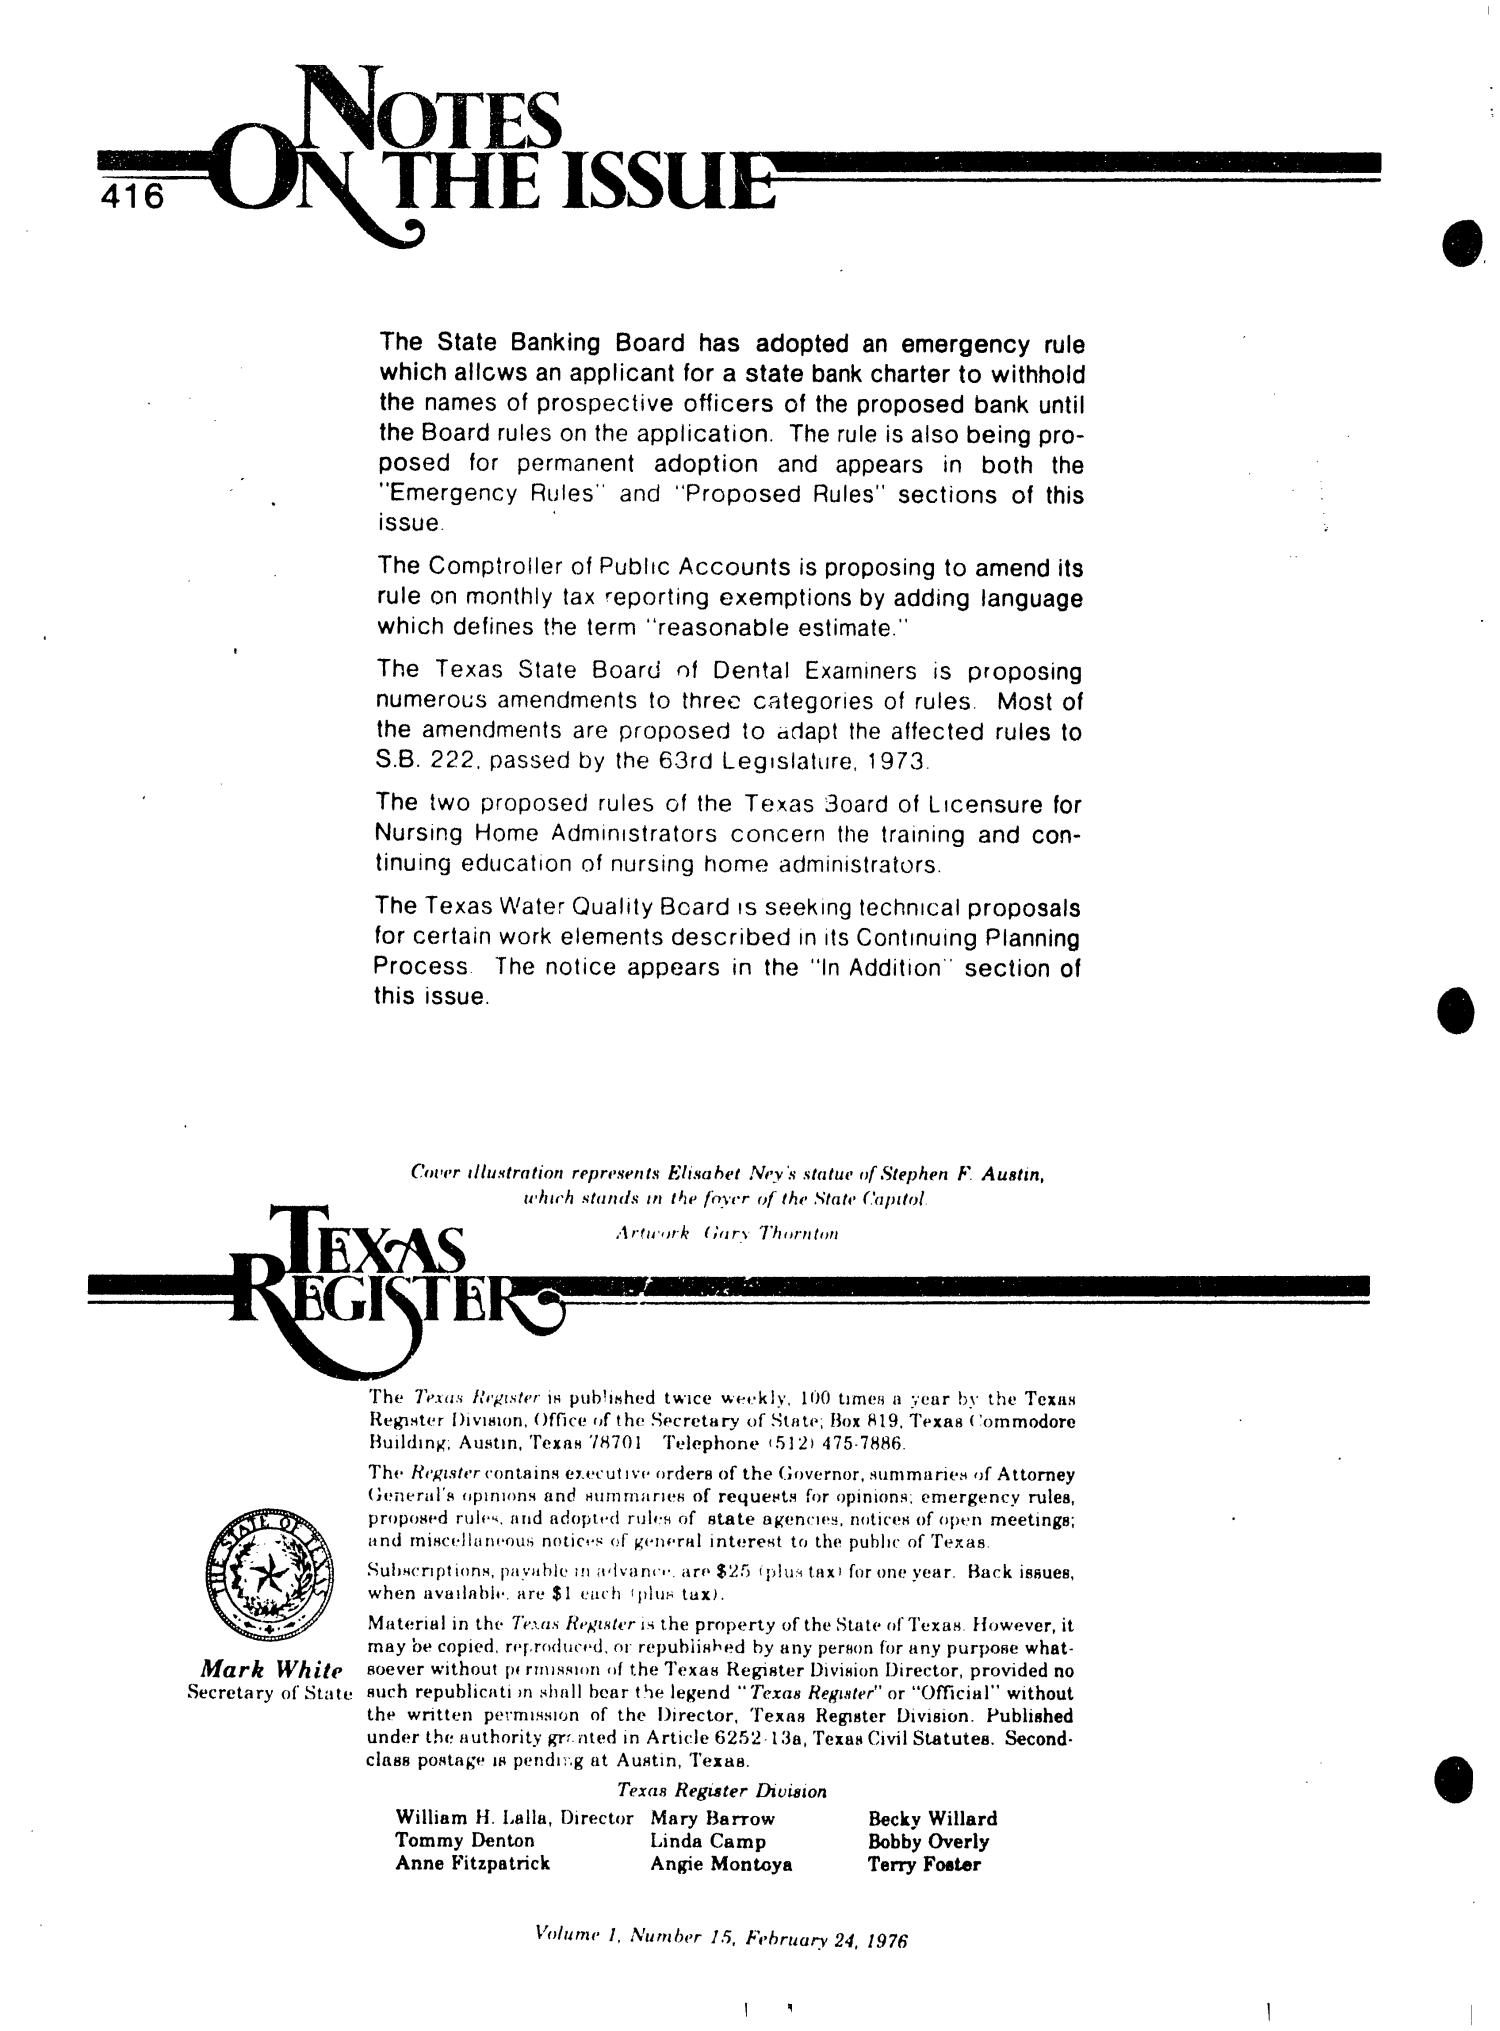 Texas Register, Volume 1, Number 15, Pages 415-450, February 24, 1976                                                                                                      416